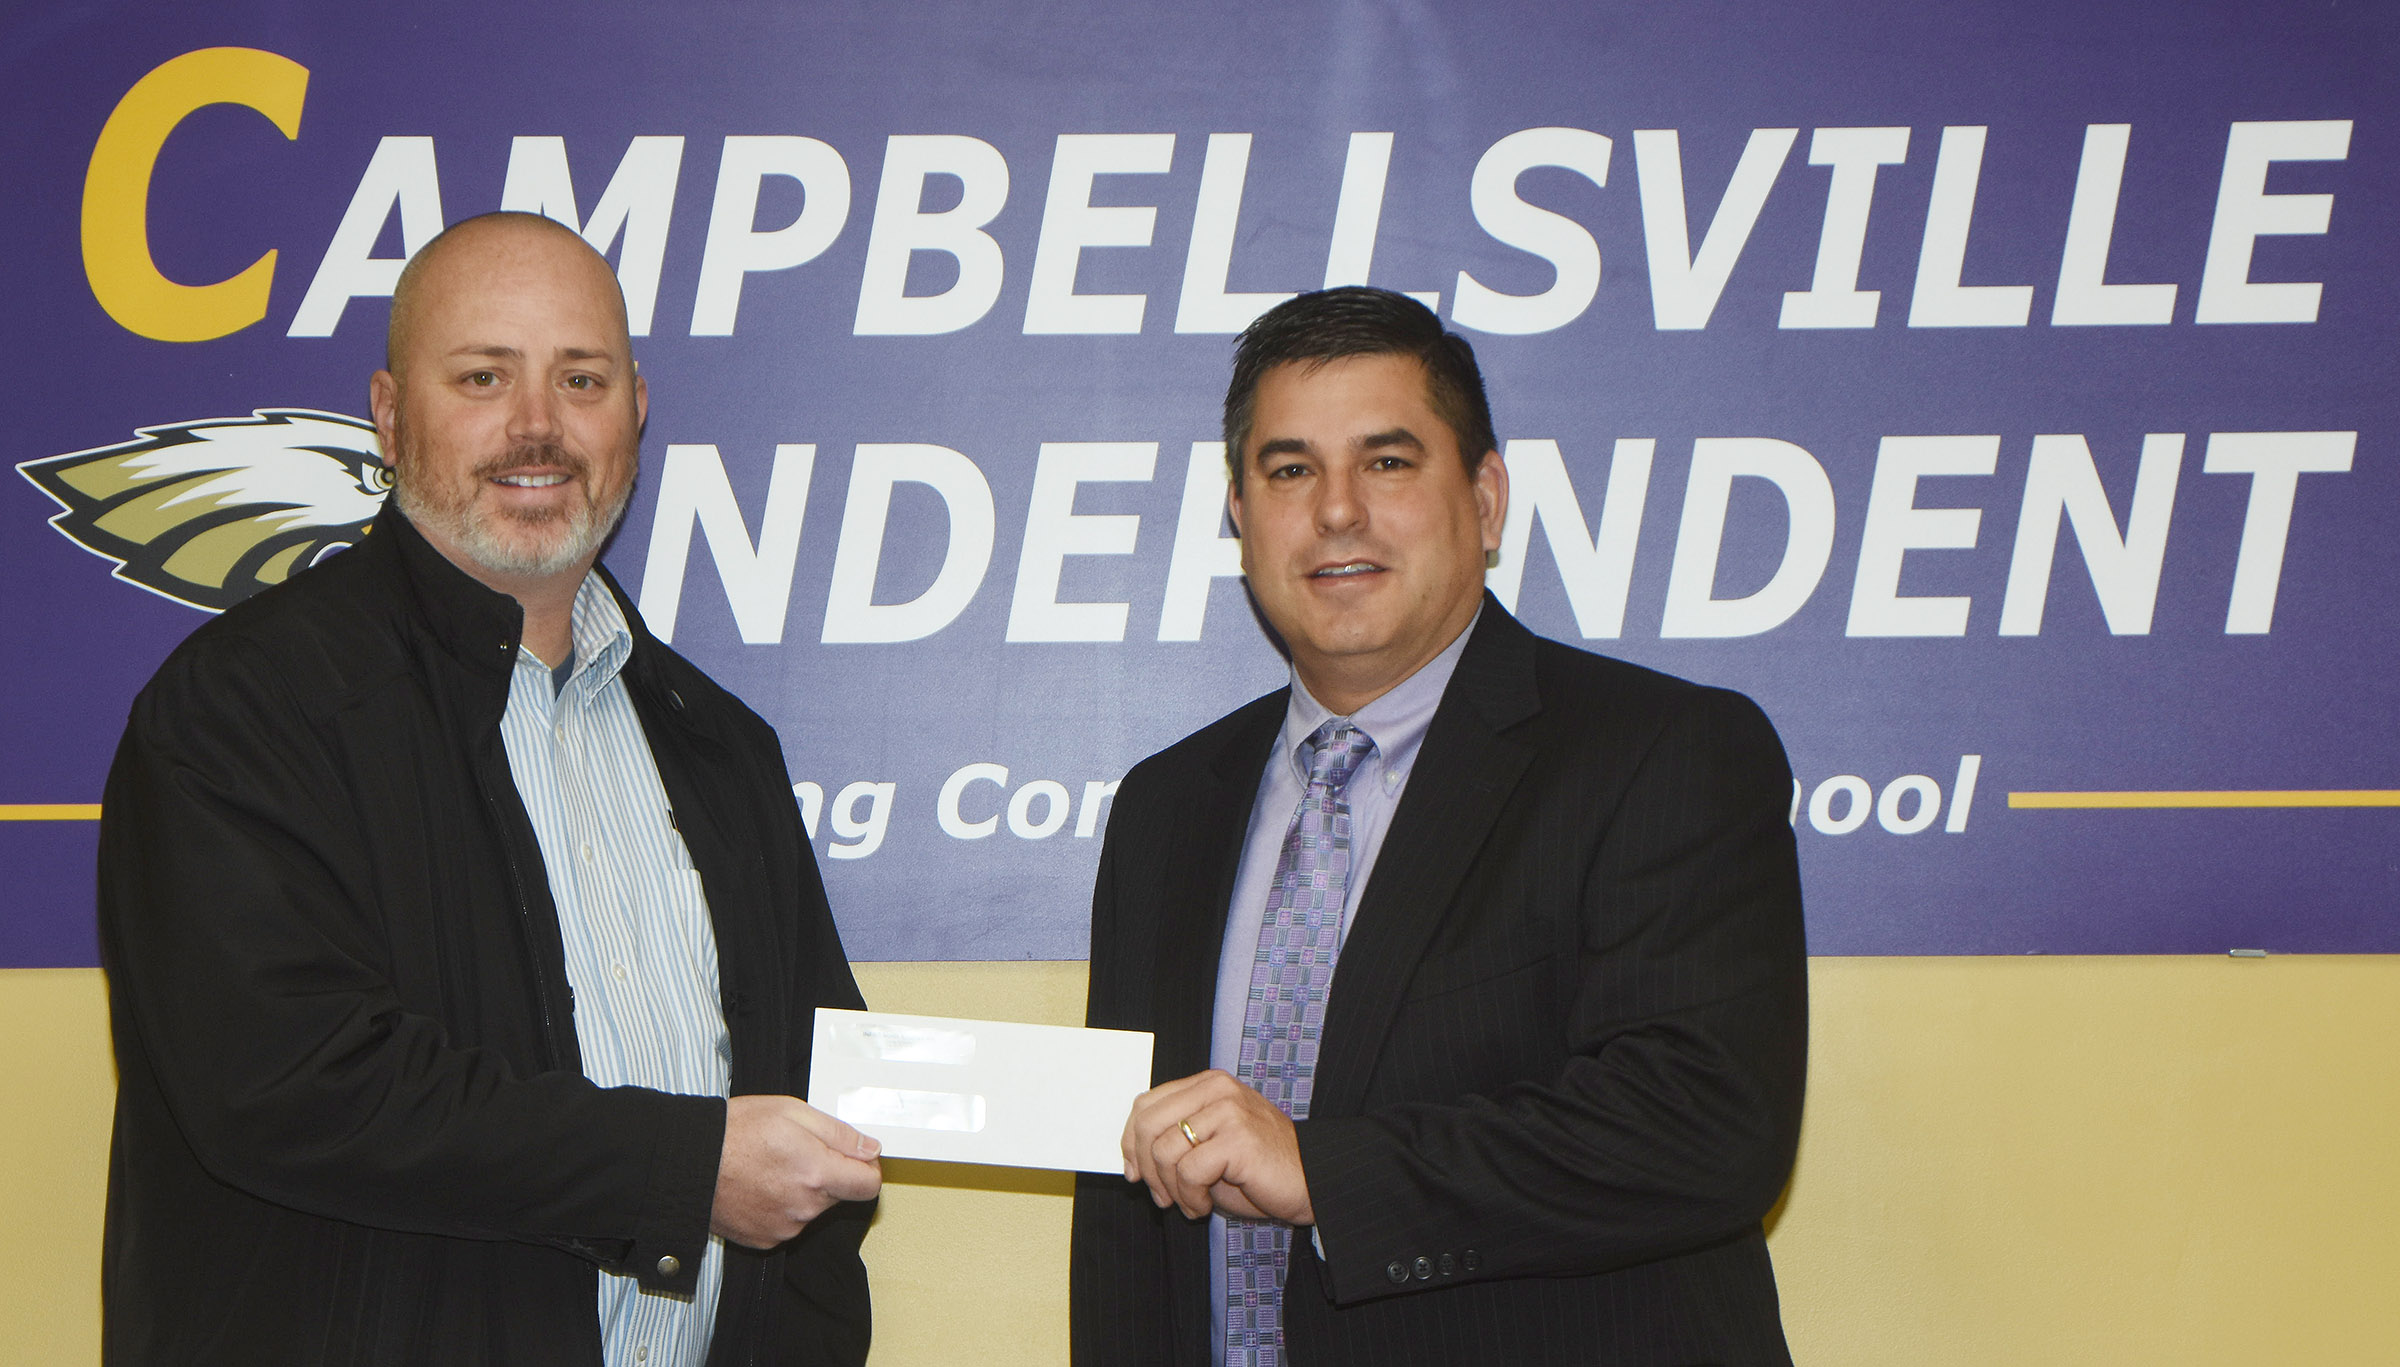 INFAC North America recently donated $2,000 to Campbellsville Independent Schools. Brian Bland, general manager, at left, made the presentation. Superintendent Kirby Smith accepted the donation on behalf of Campbellsville Independent Schools.